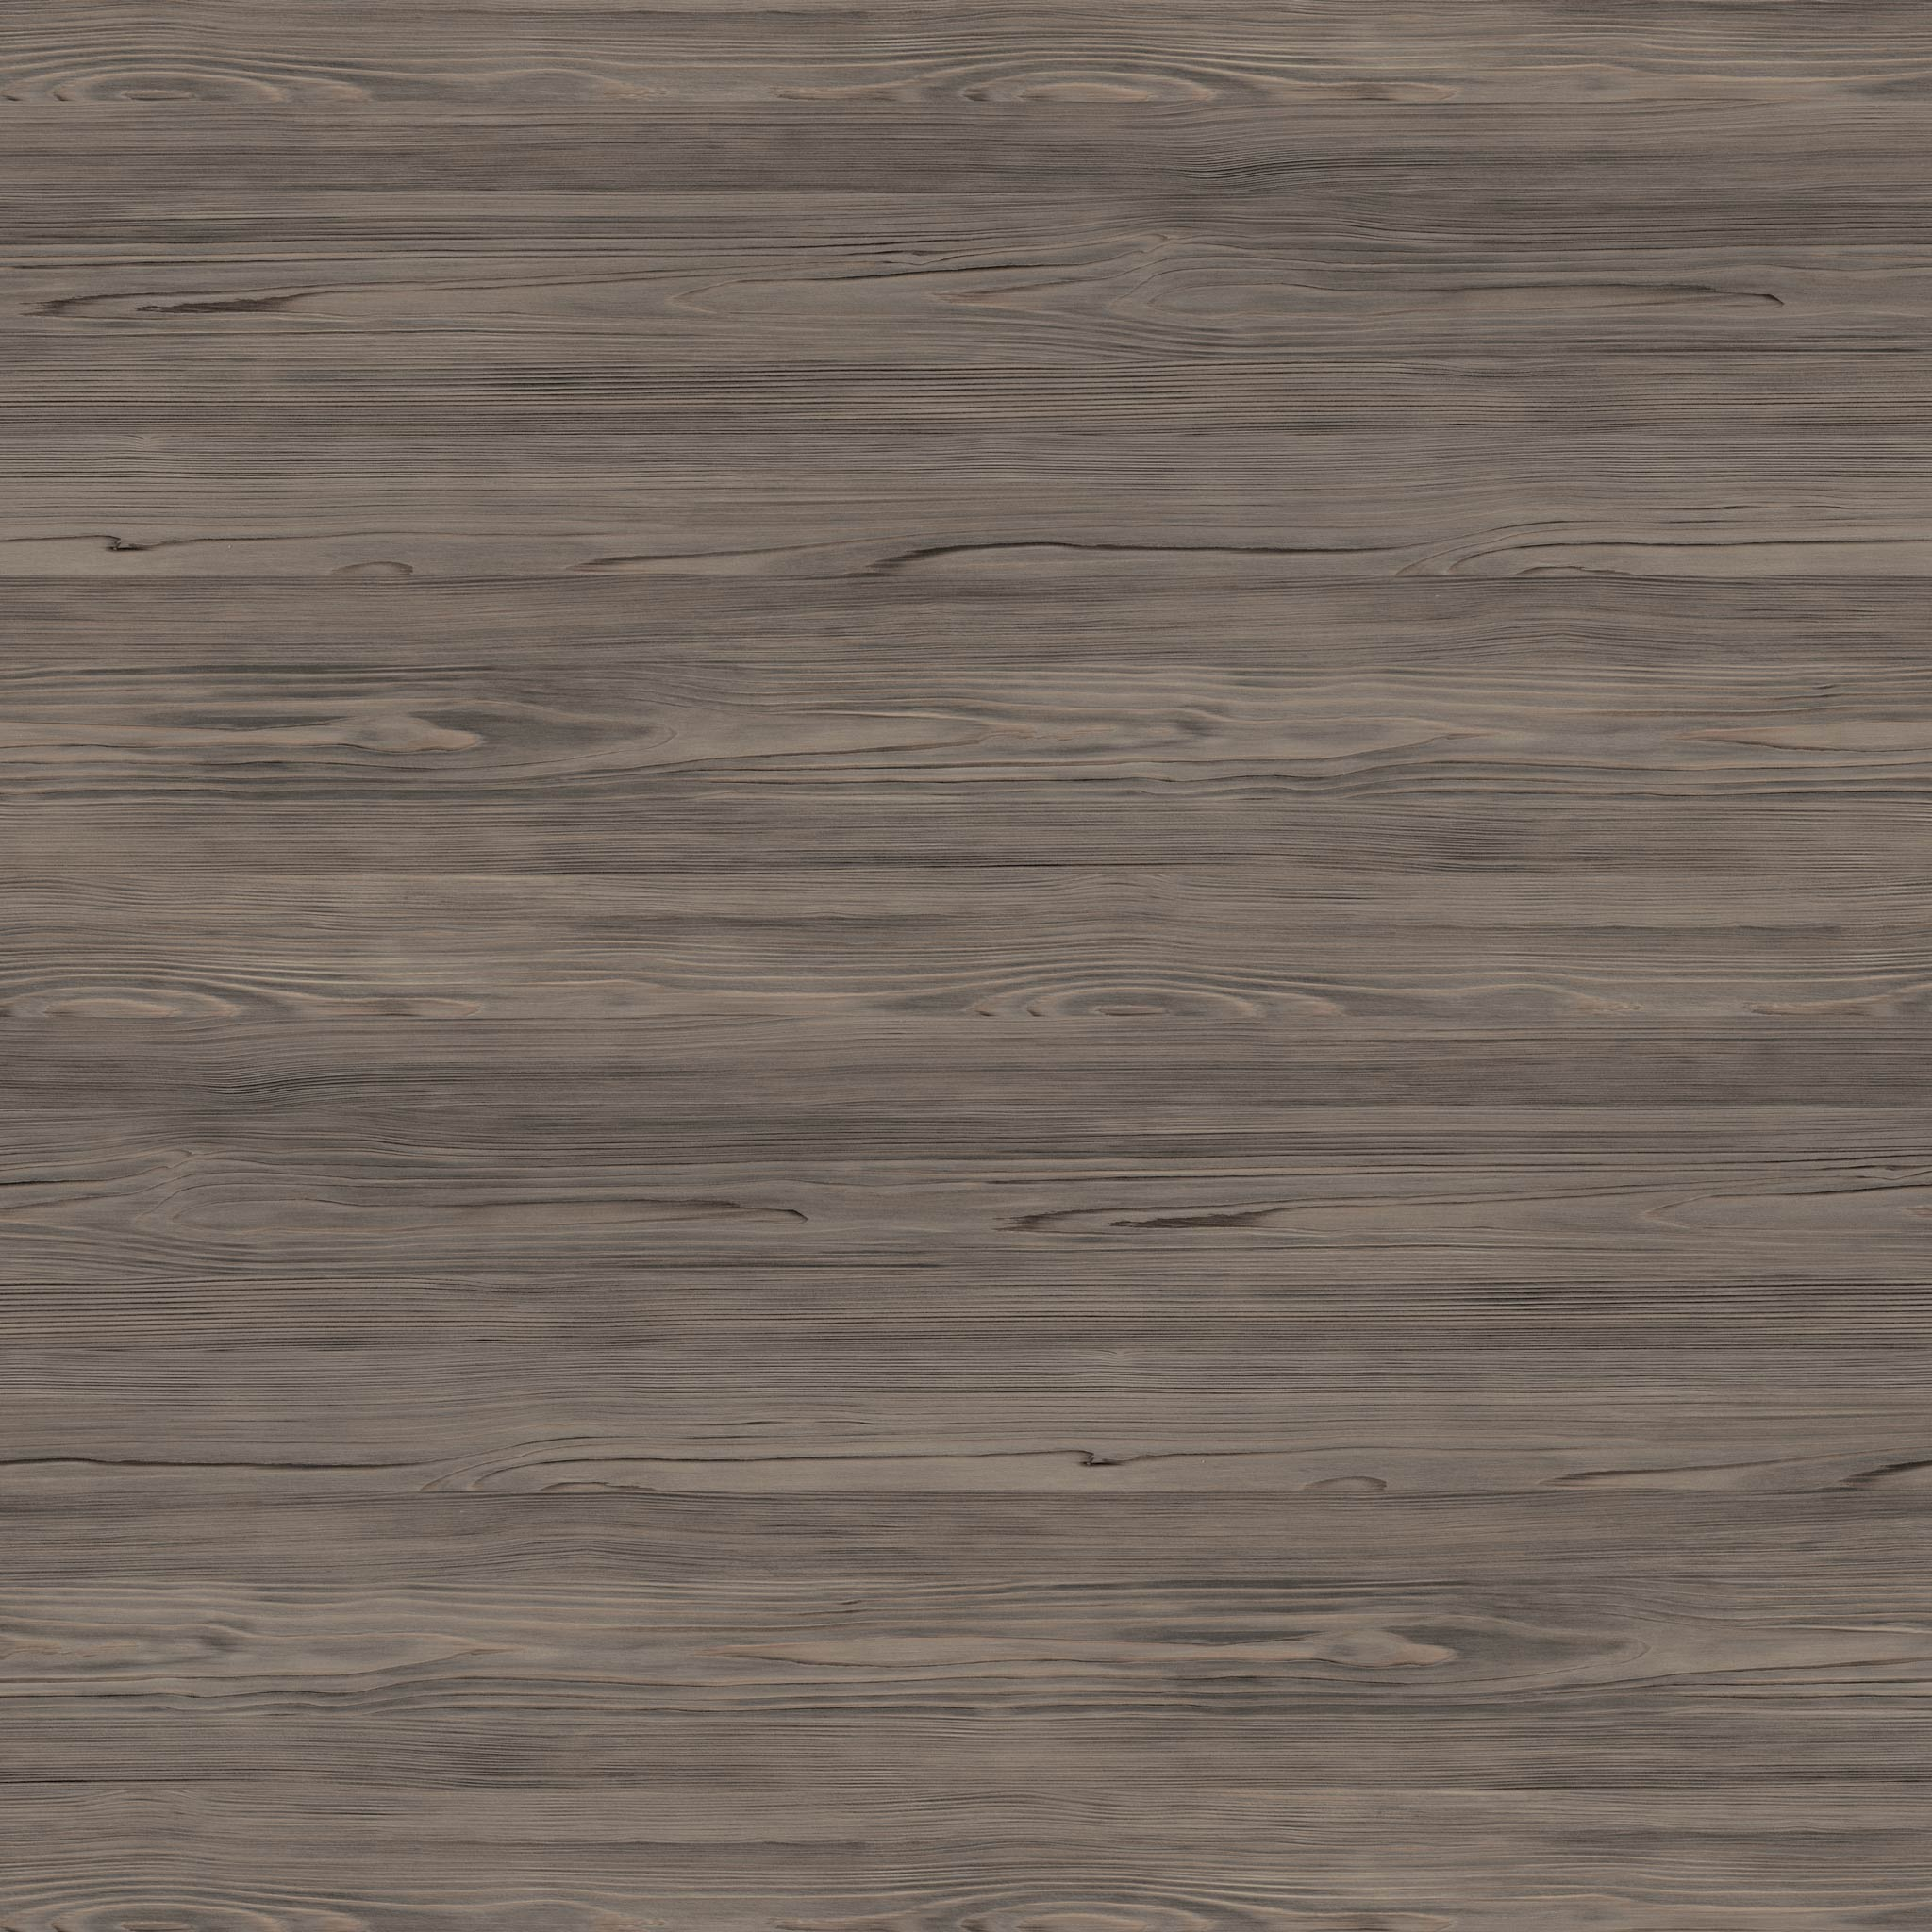 Egger Contemporary Graphite Fleetwood kitchen worktop sample.